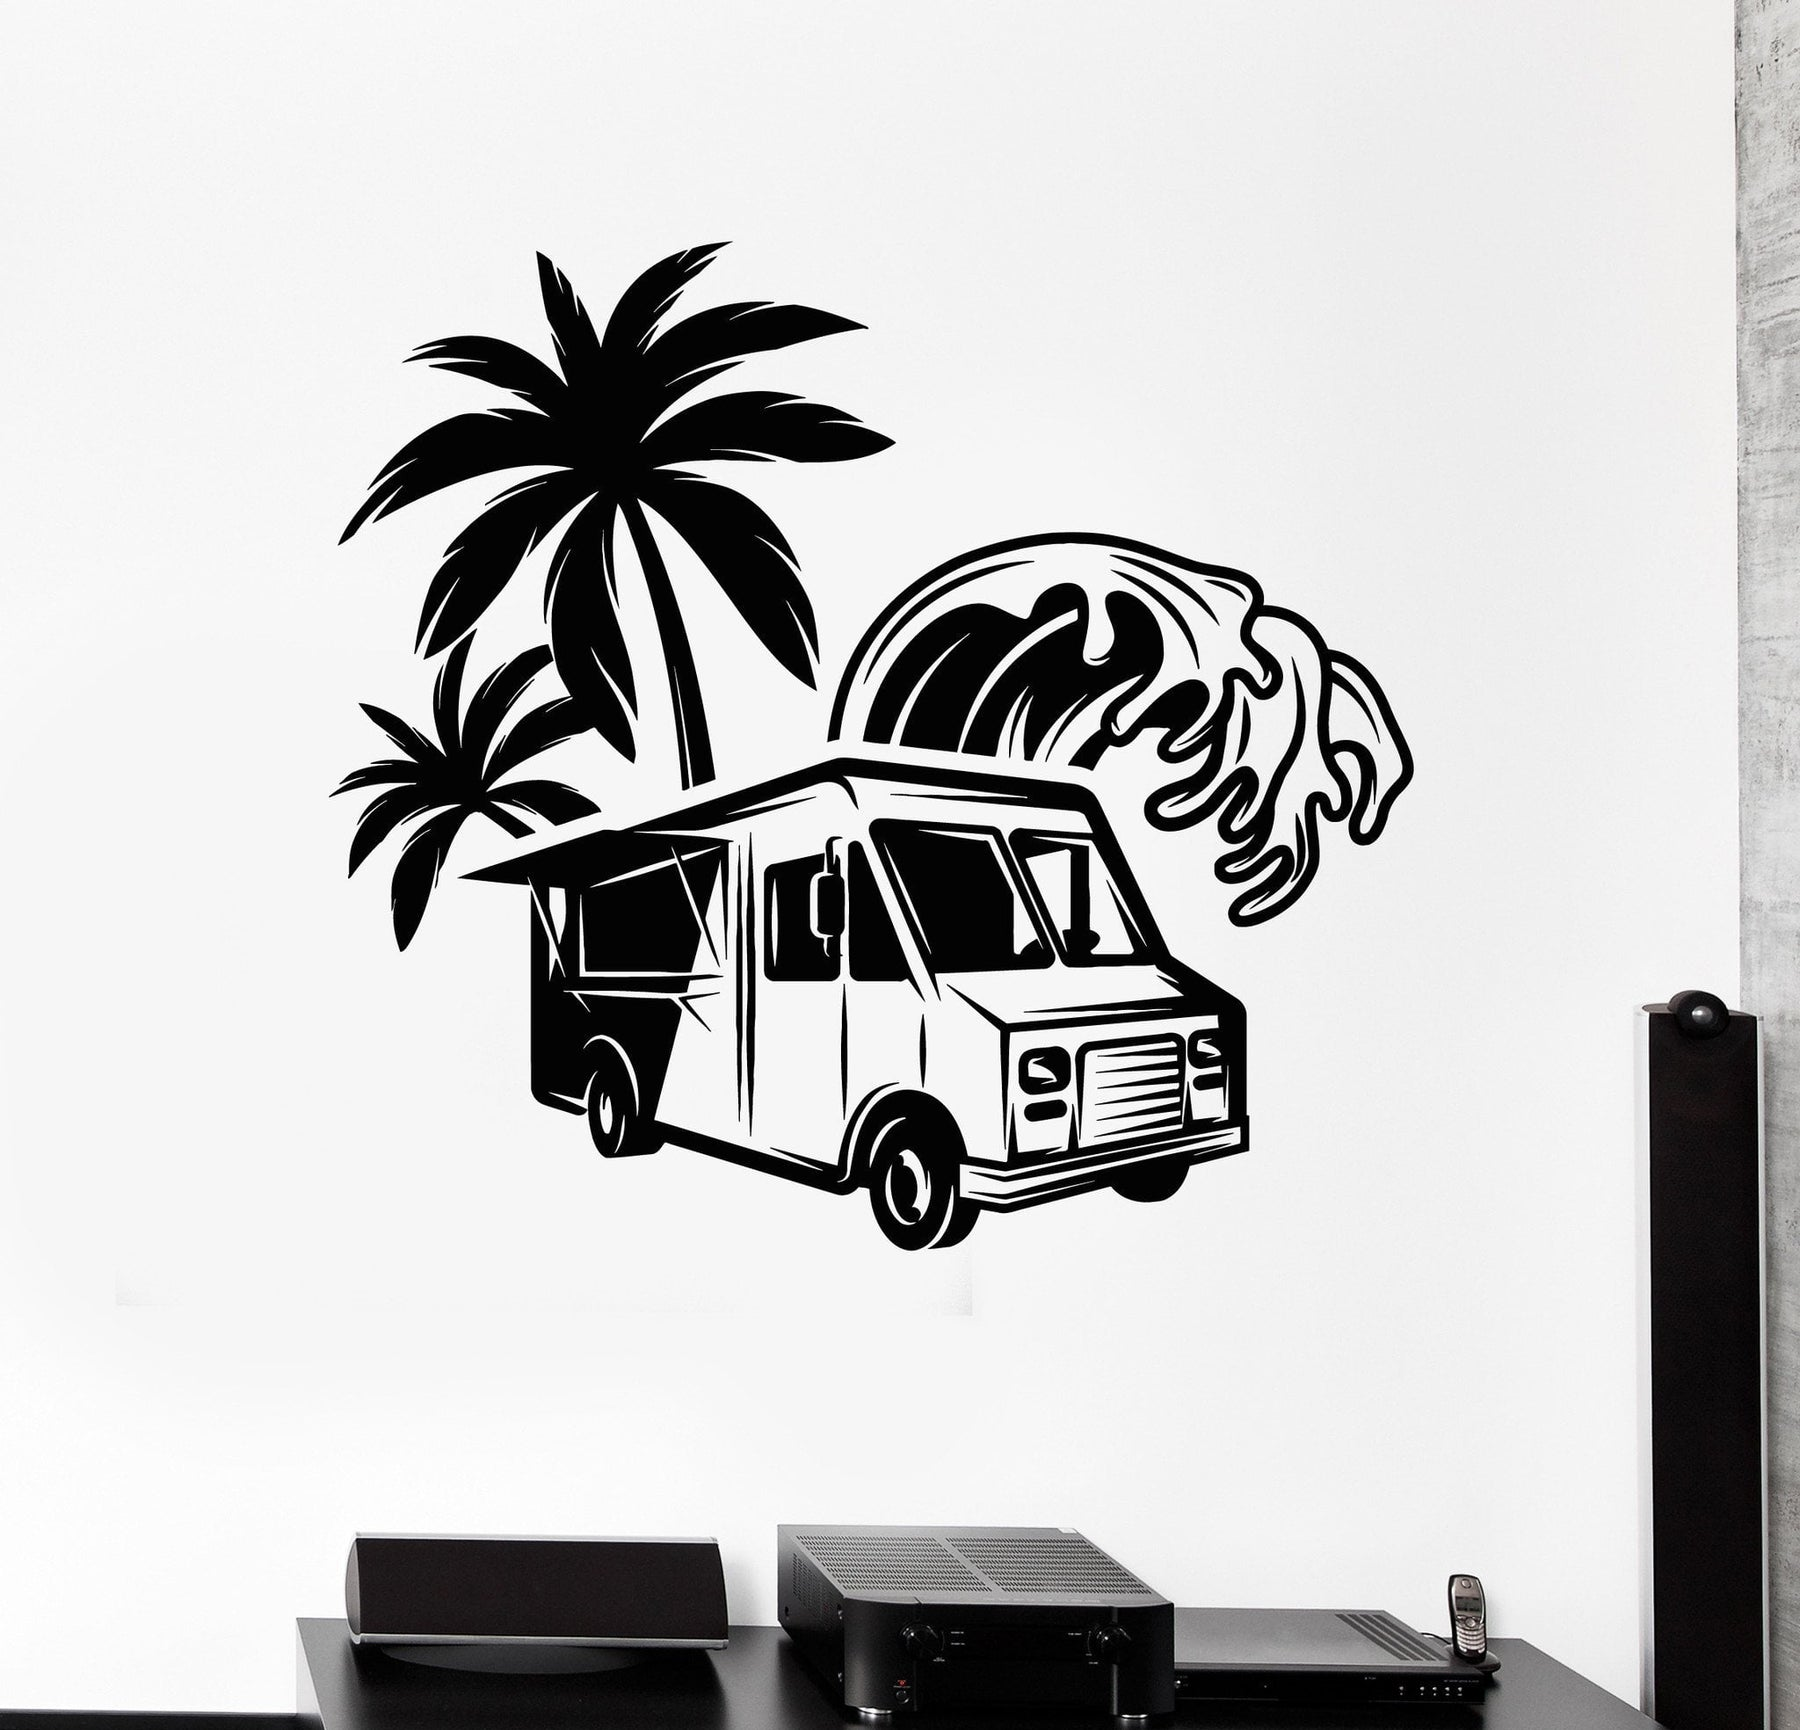 500 Food Truck Trailer Concession Stand Decal Sign Ideas Concession Stand Food Truck Concession